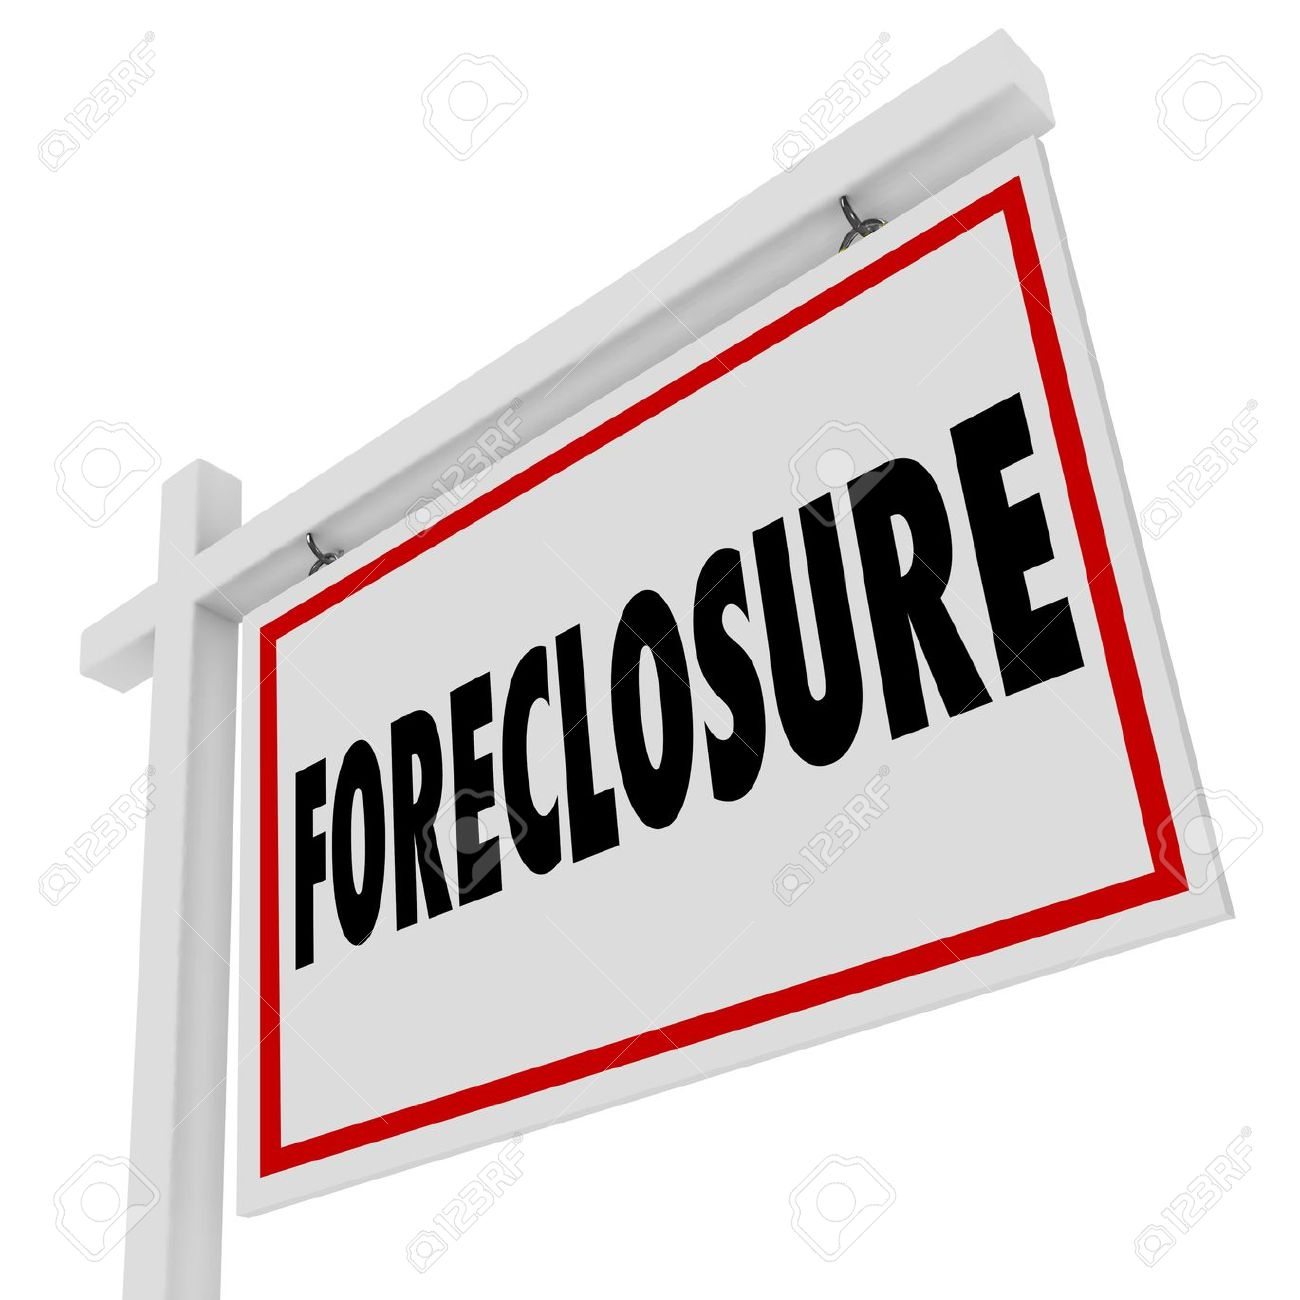 Foreclosure Word On A Home For Sale Real Estate Sign To Illustrate.